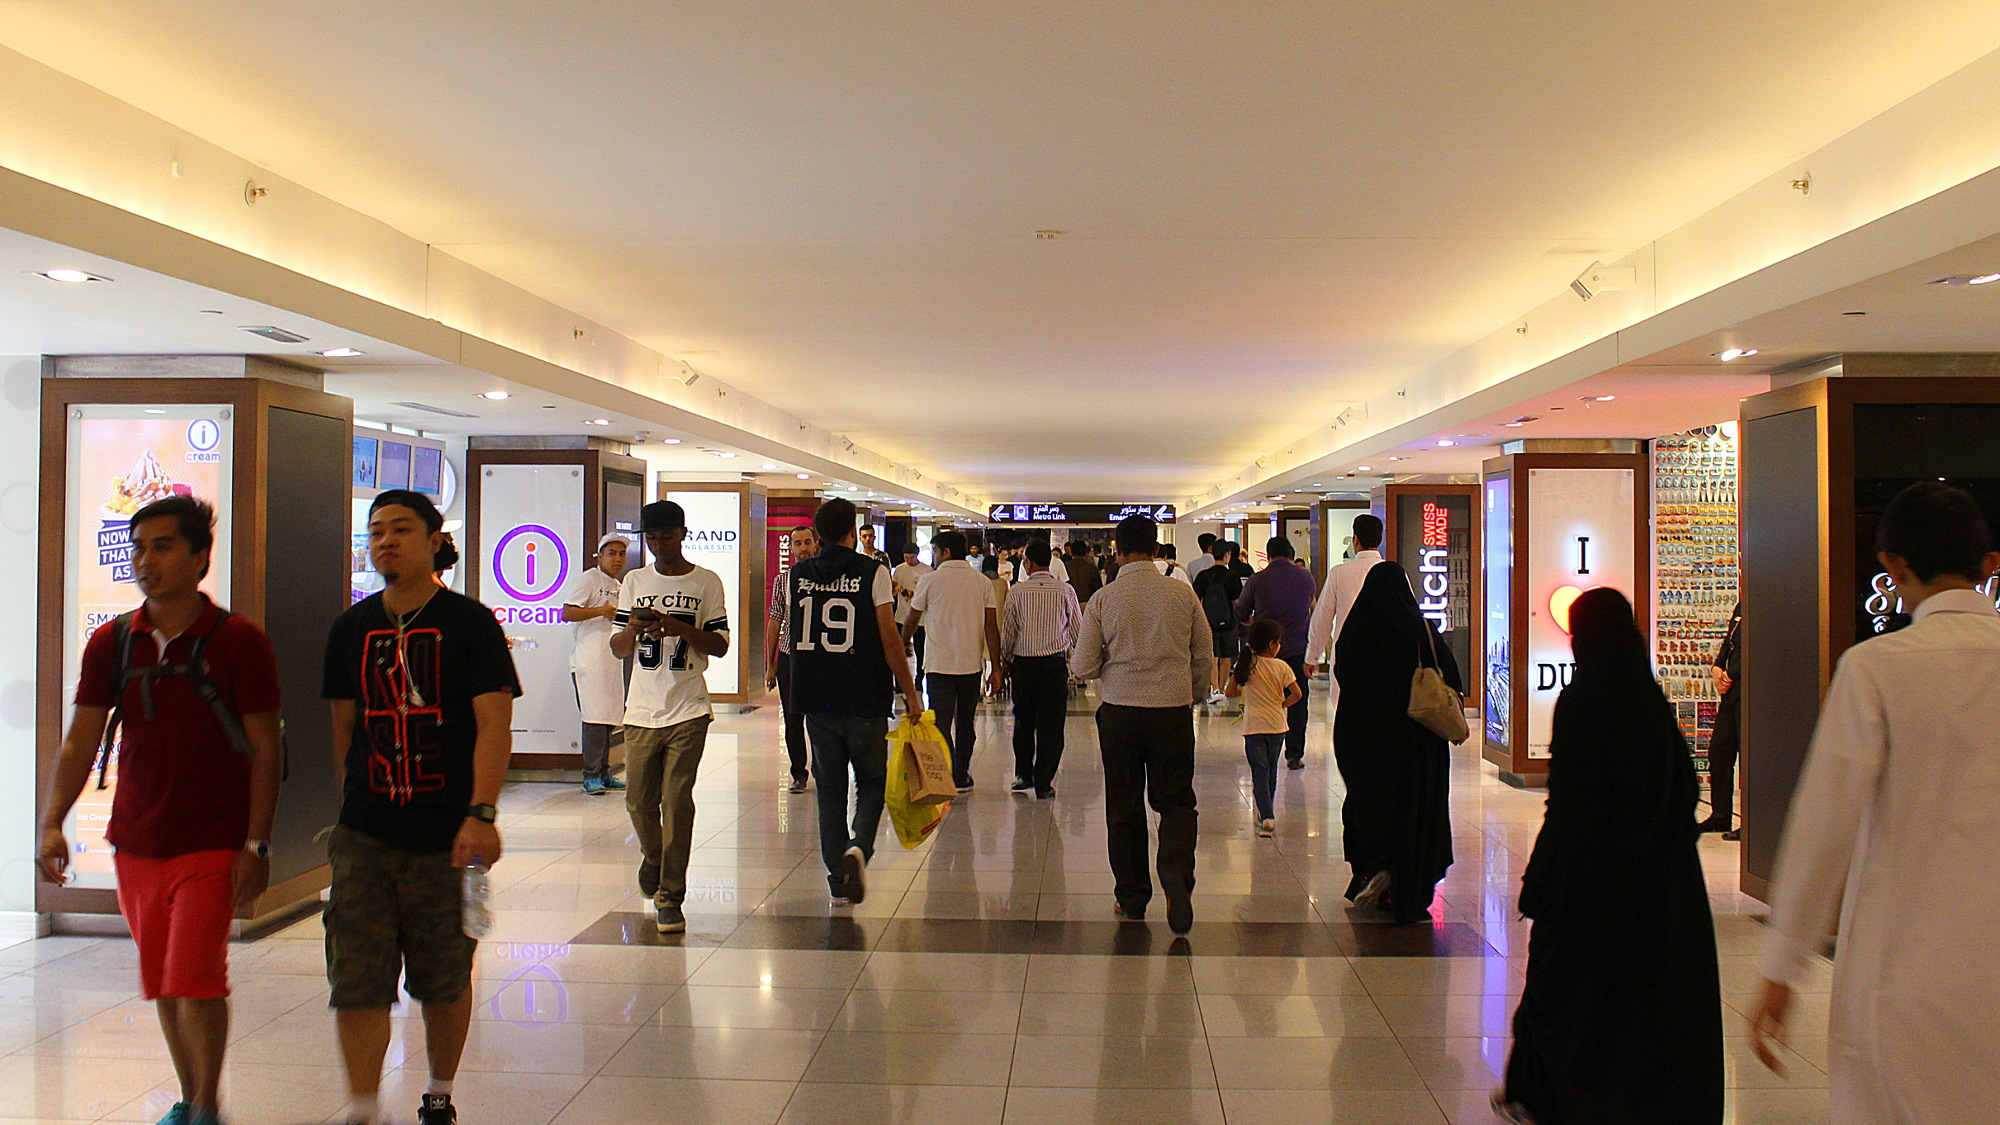 Shoppers inside Dubai Mall.